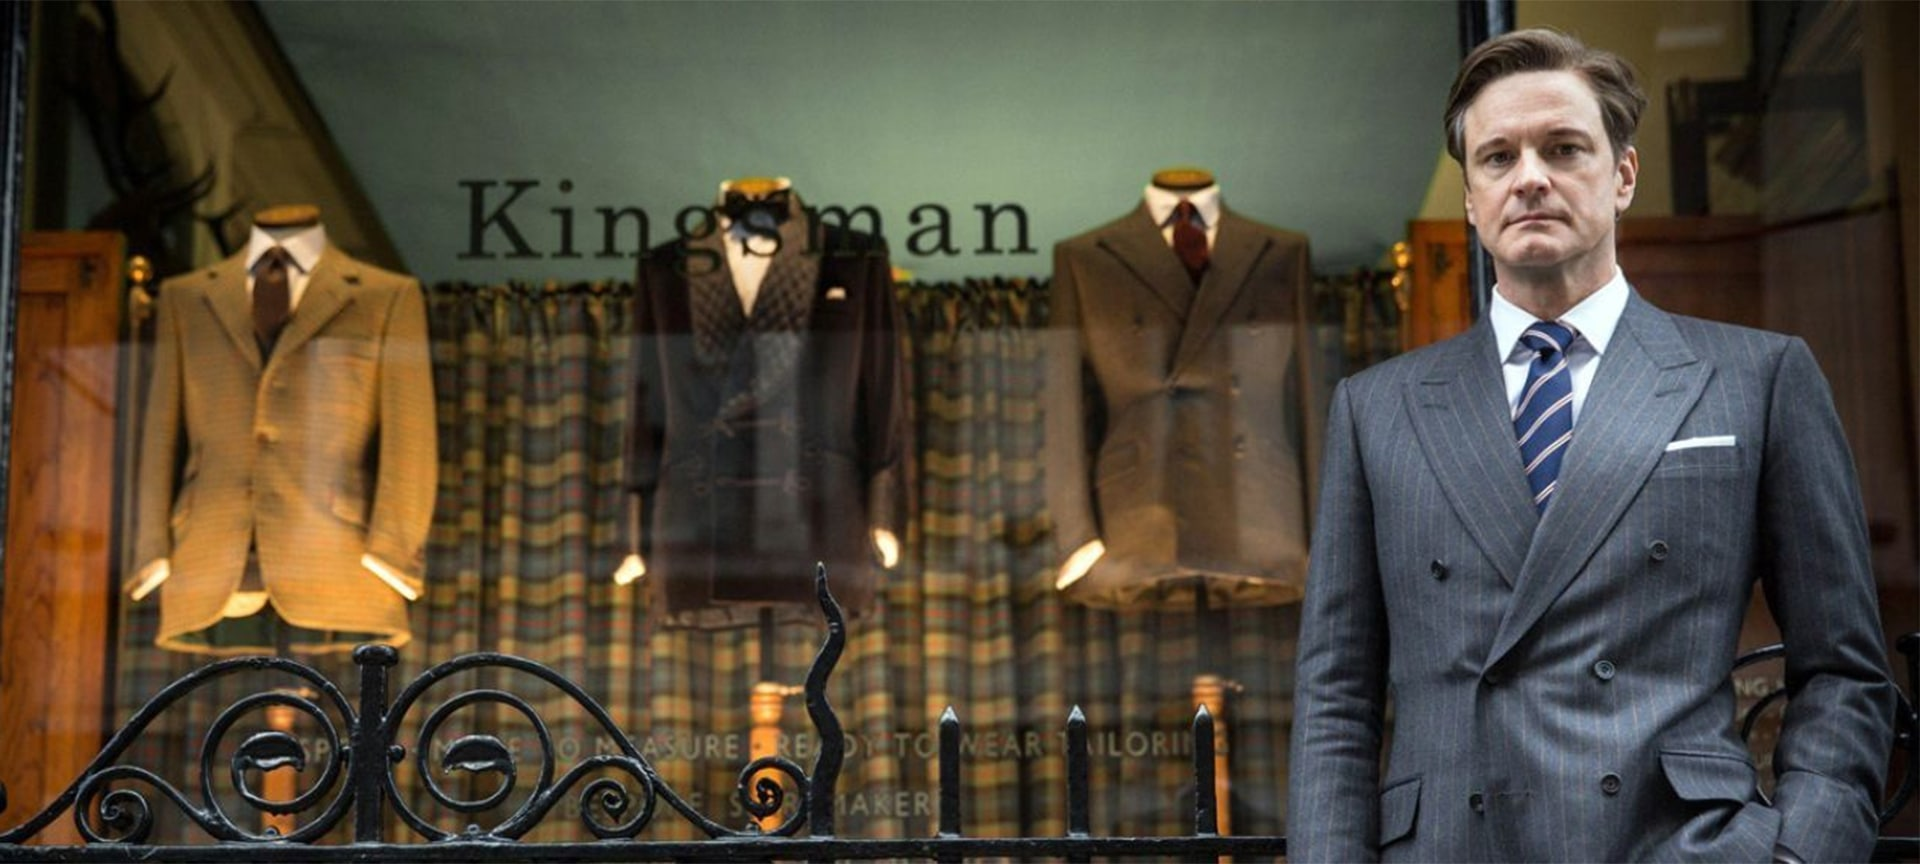 Huntsman served as the inspiration for Matthew Vaughn's blockbuster Kingsman movies The Secret Service, The Golden Circle and The King's Man. During an appointment with his cutter, Vaughn imagined moving beyond the walls of his fitting room, with the legendary premises acting as a smokescreen for his team of spies, the Kingsmen.